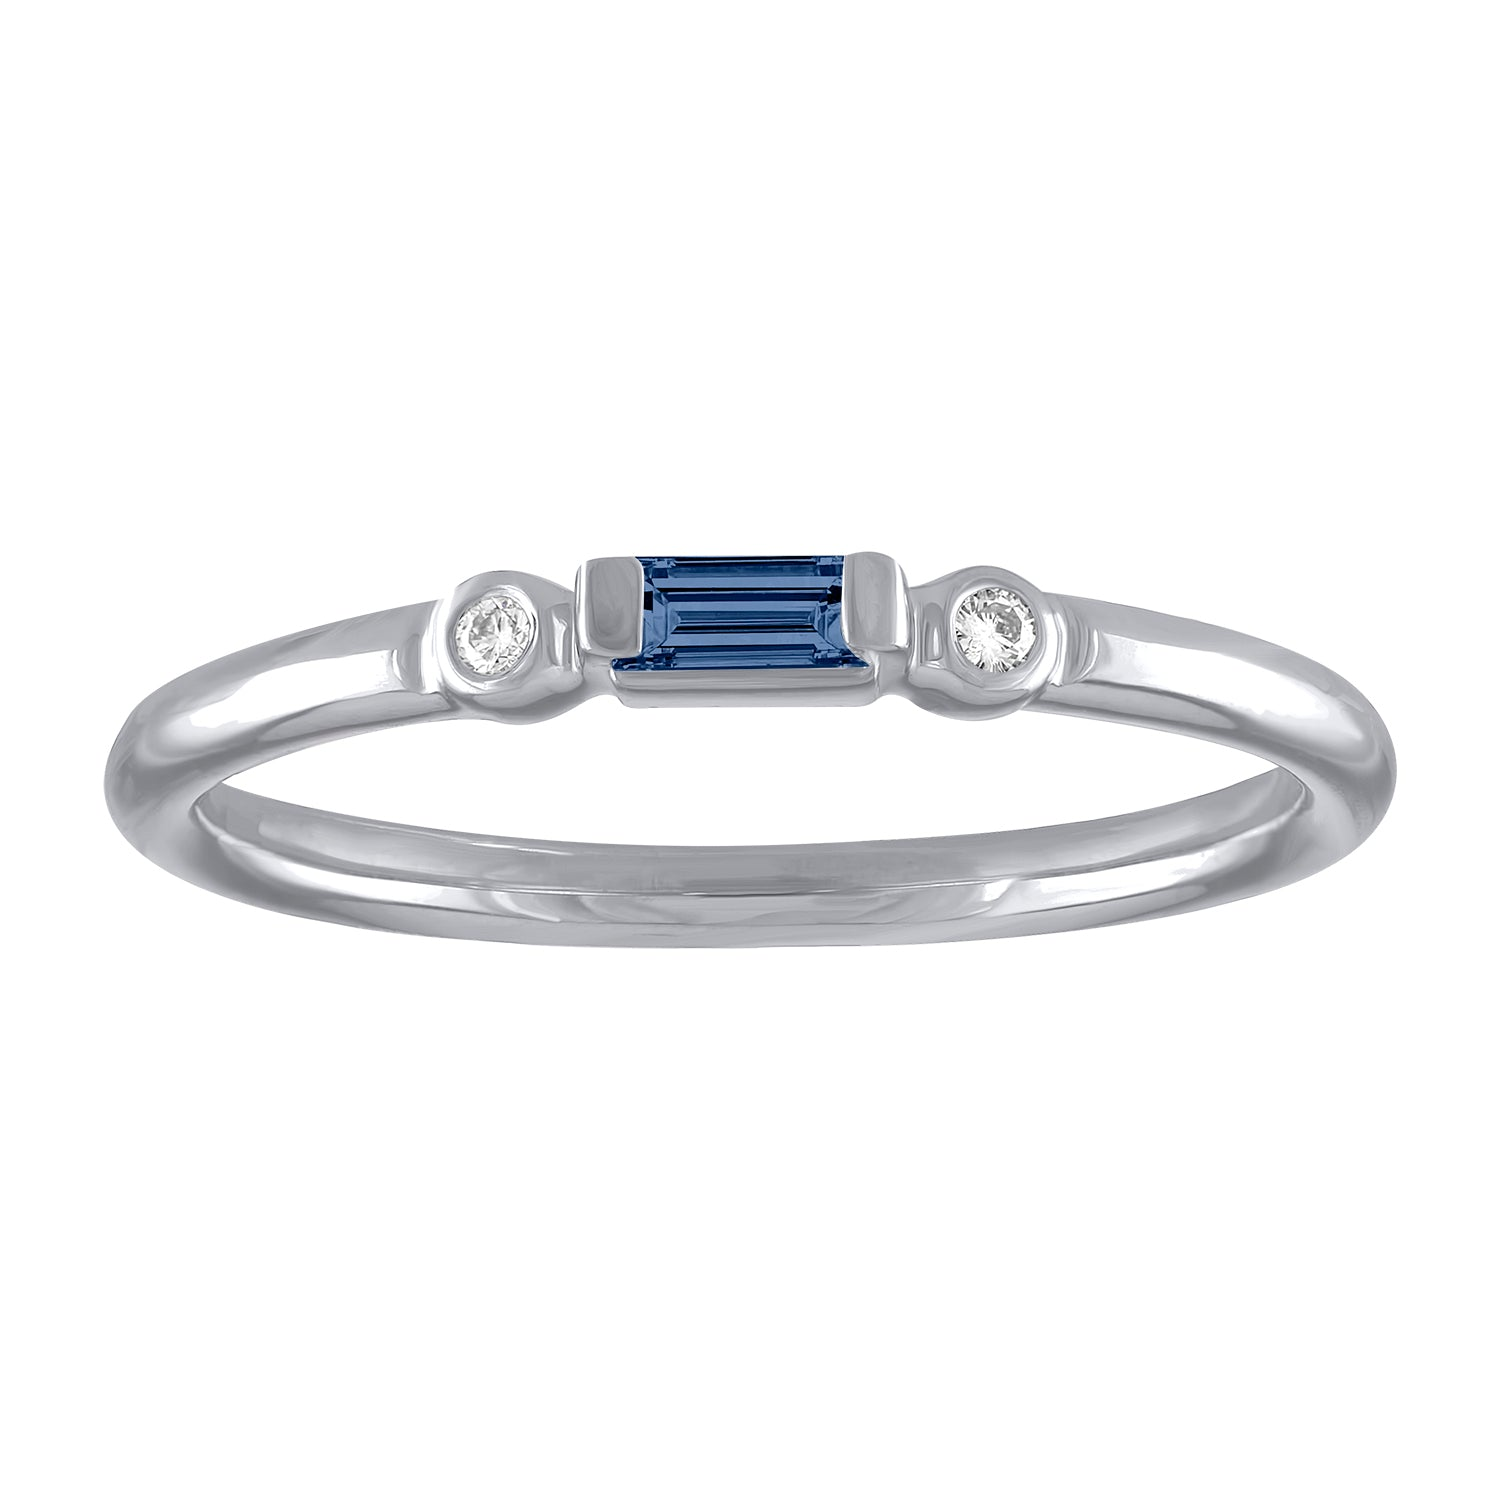 Olive ring with sapphire baguette and two round diamonds